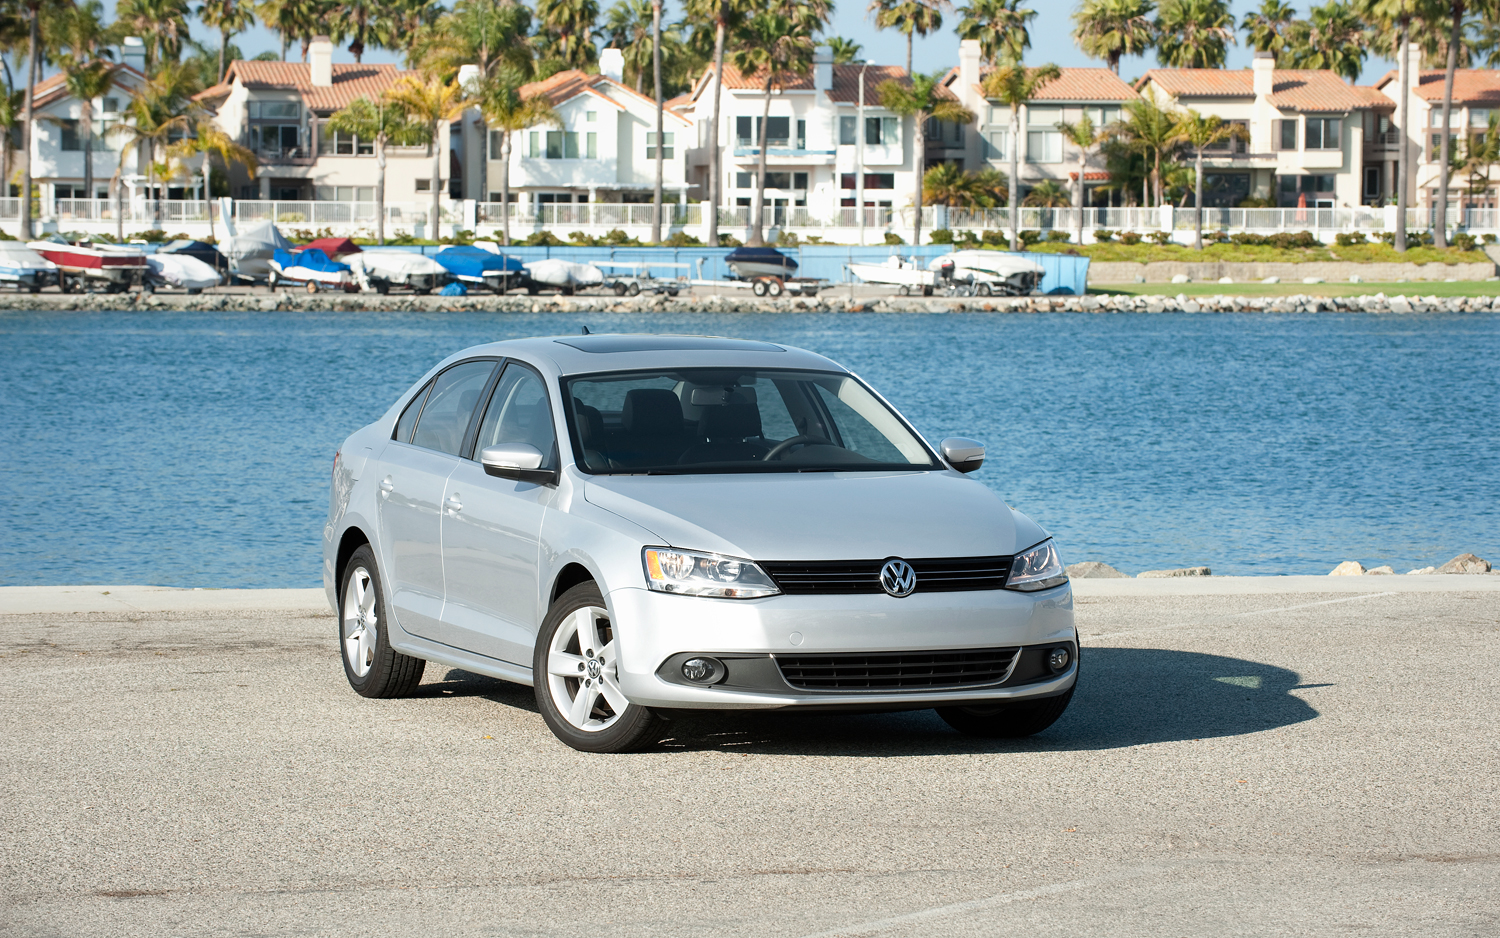 medium resolution of 2011 volkswagen jetta tdi long term update 9